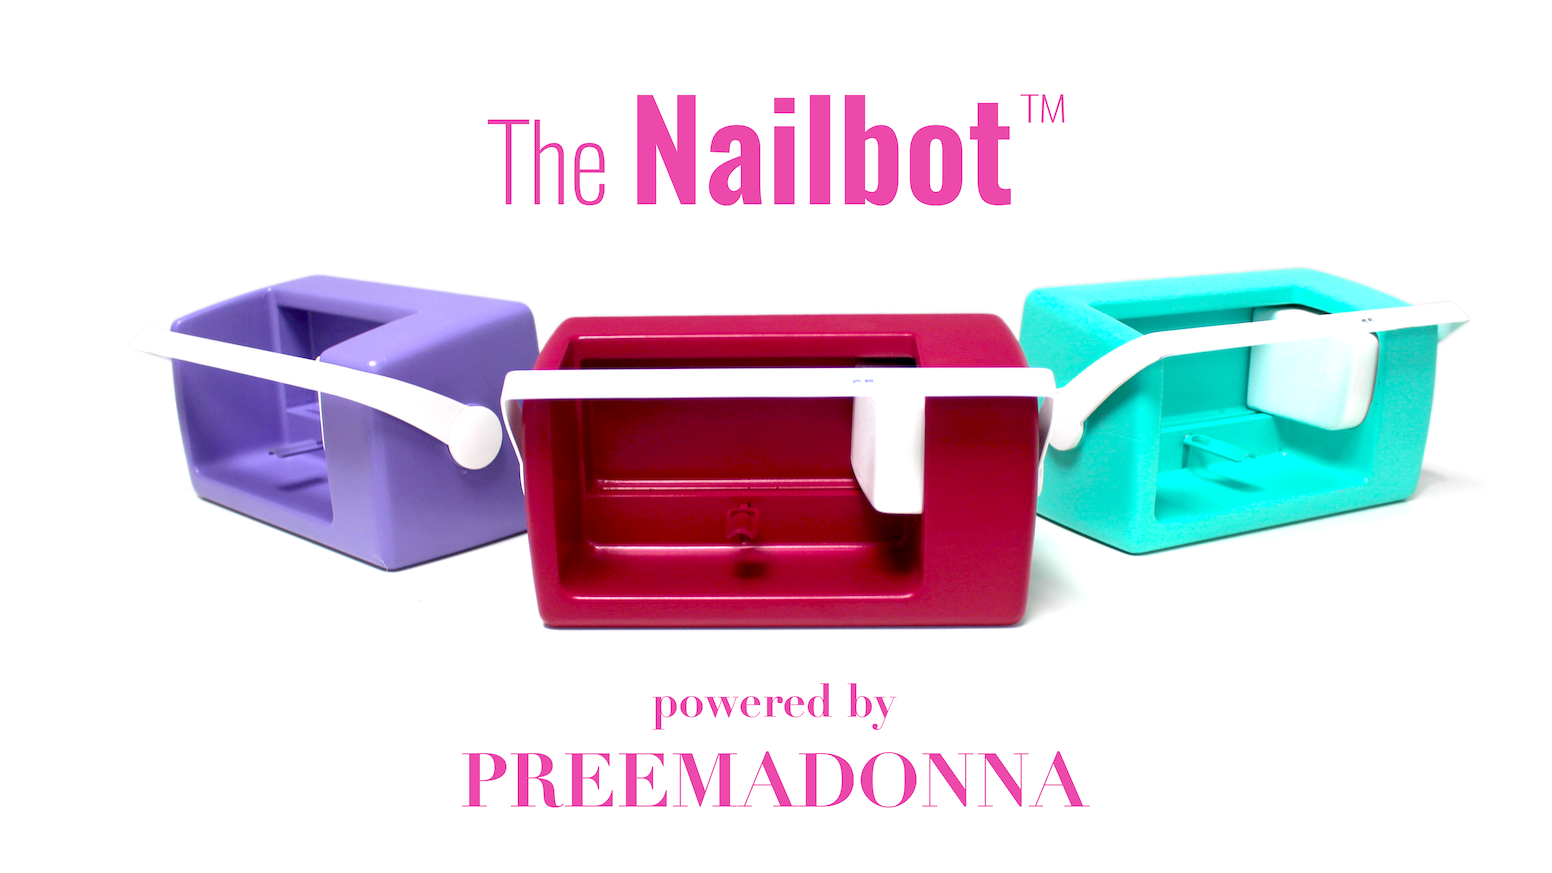 Nailbot prints custom art directly on nails with your phone in 5 seconds! Join the Nailbot waitlist if you want to pre-order! www.thenailbot.com